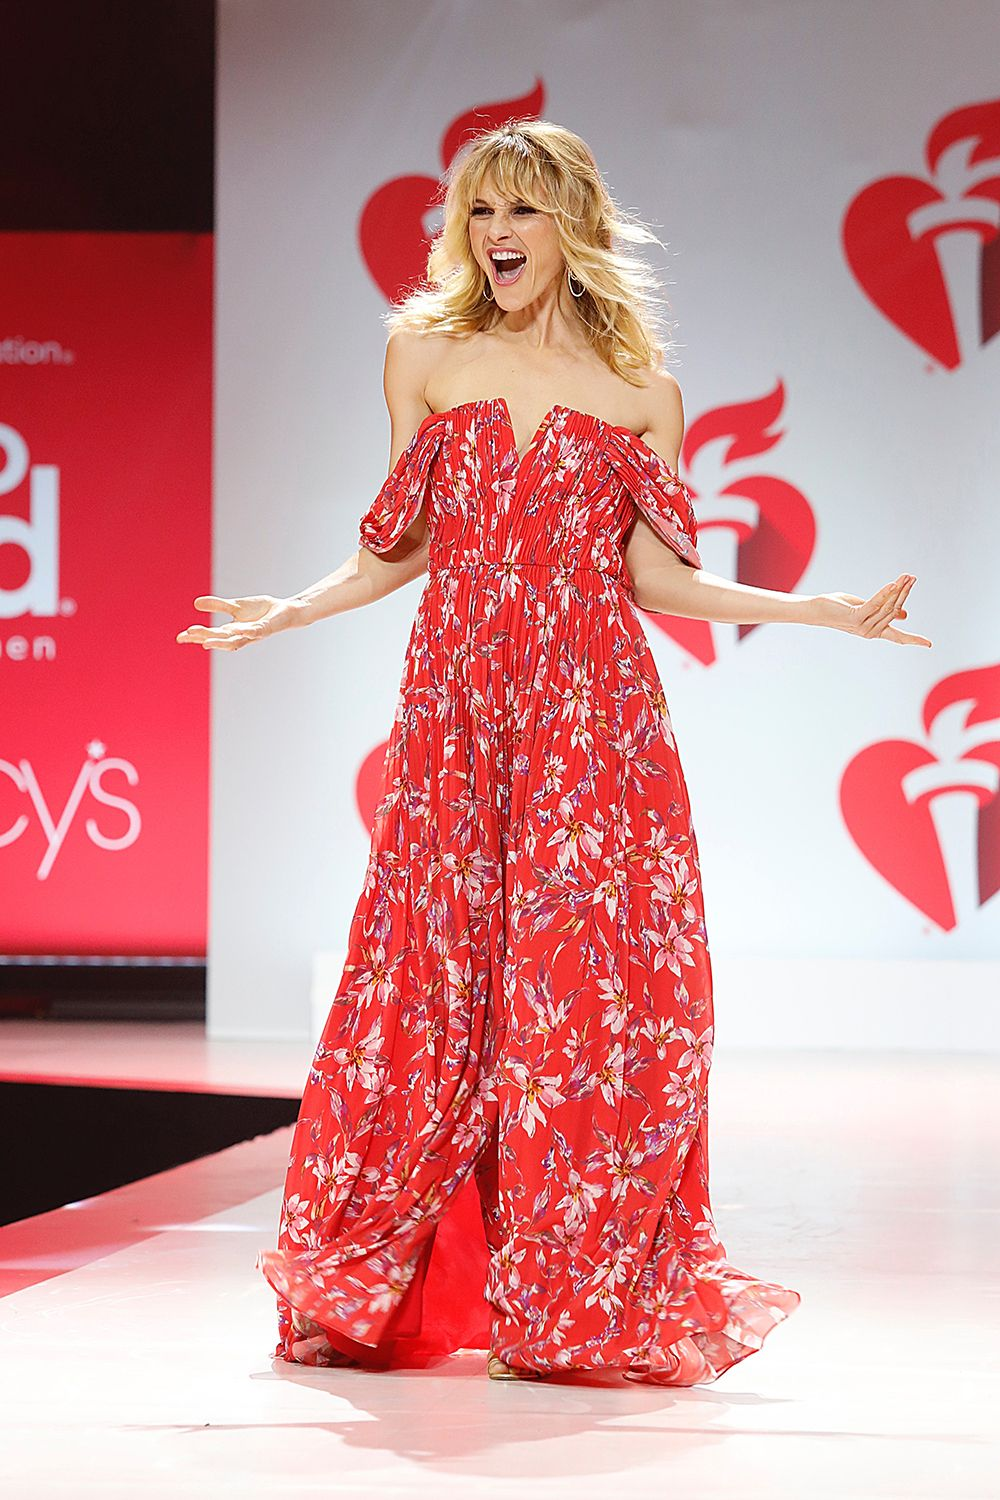 'Go Red for Women' Red Dress Collection Show — PICS